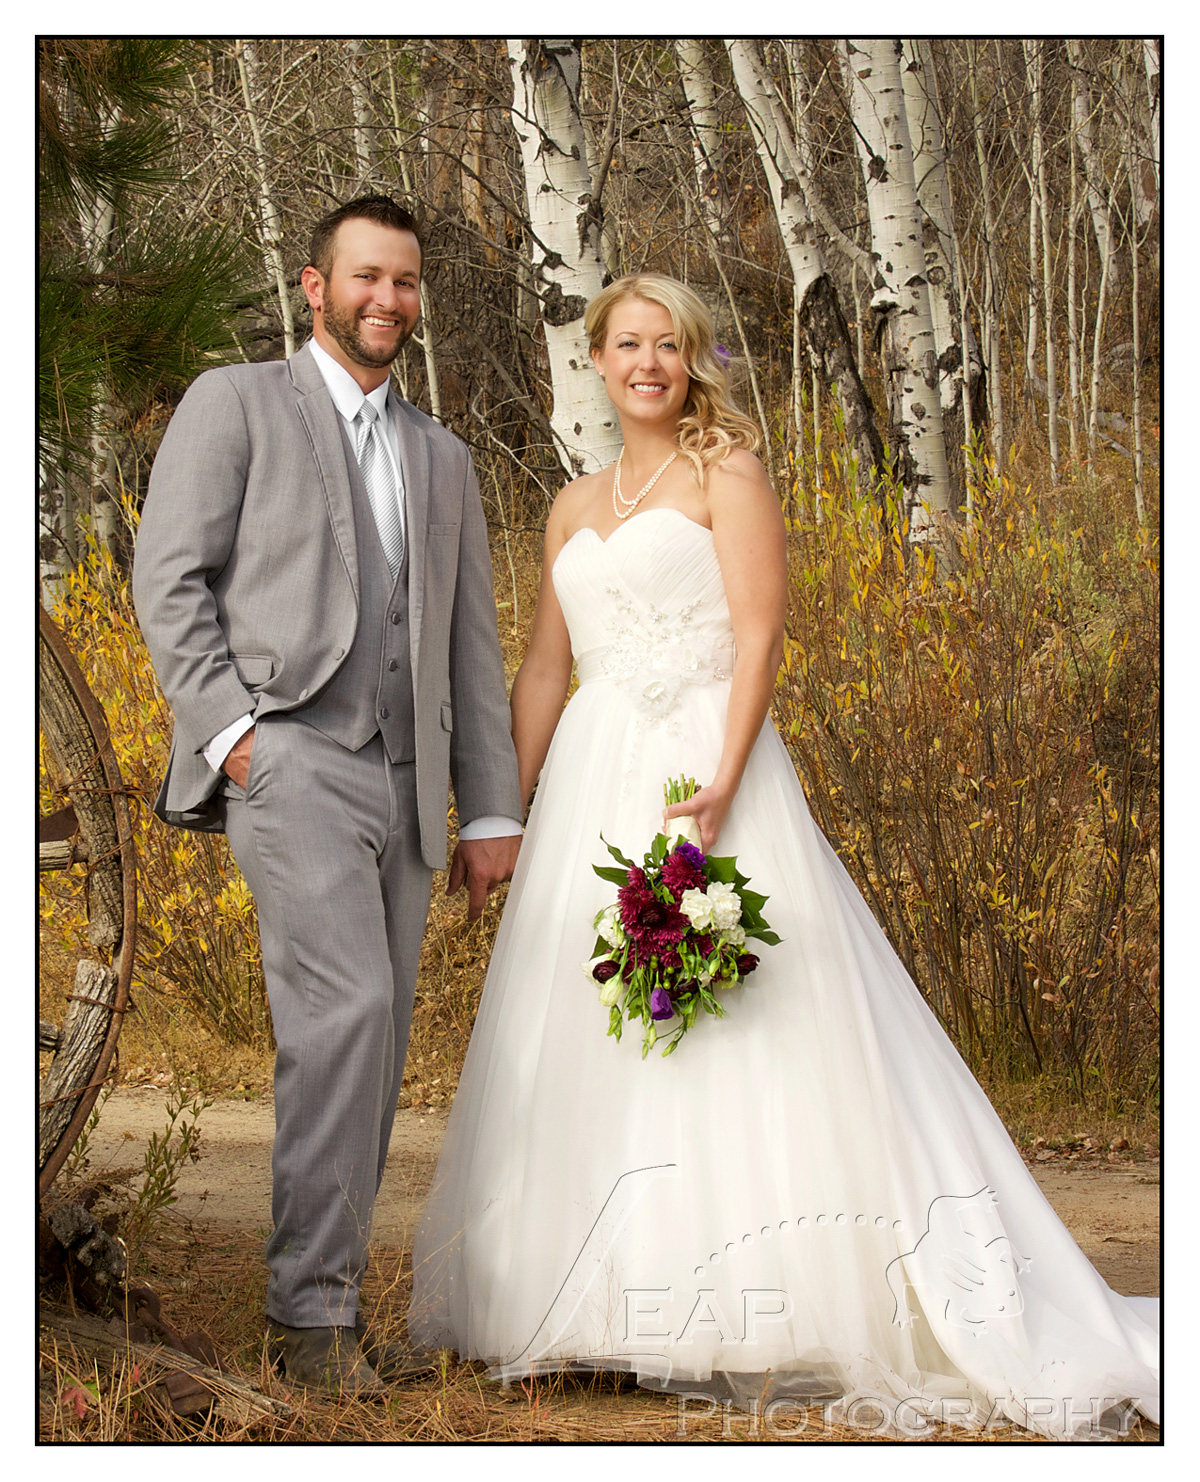 # Hypnosis For Weight Loss Boise Id - Fastest Way To Wedding photography boise id